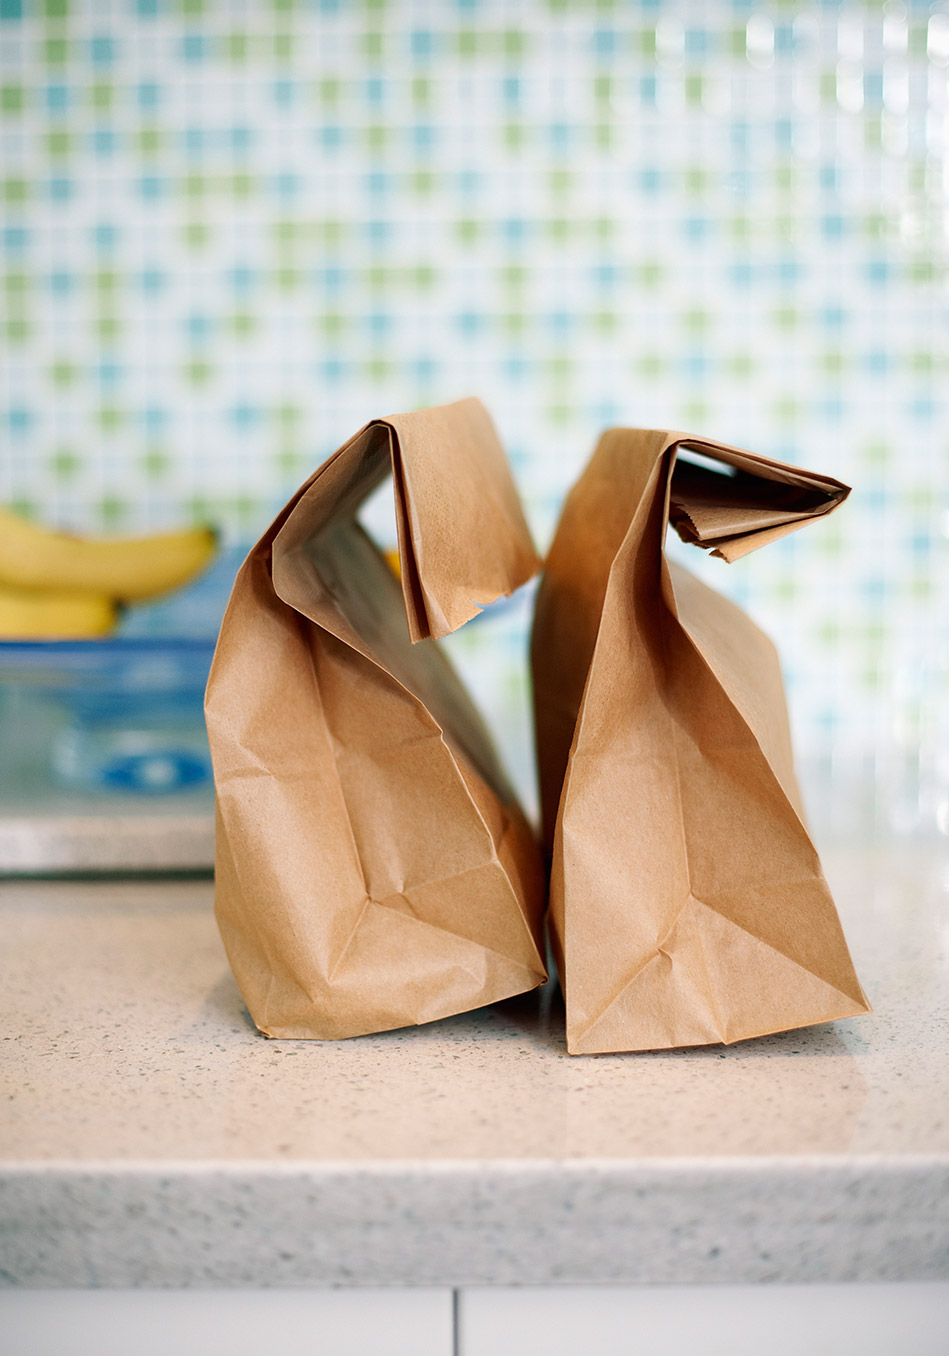 Packing a lunch to save money